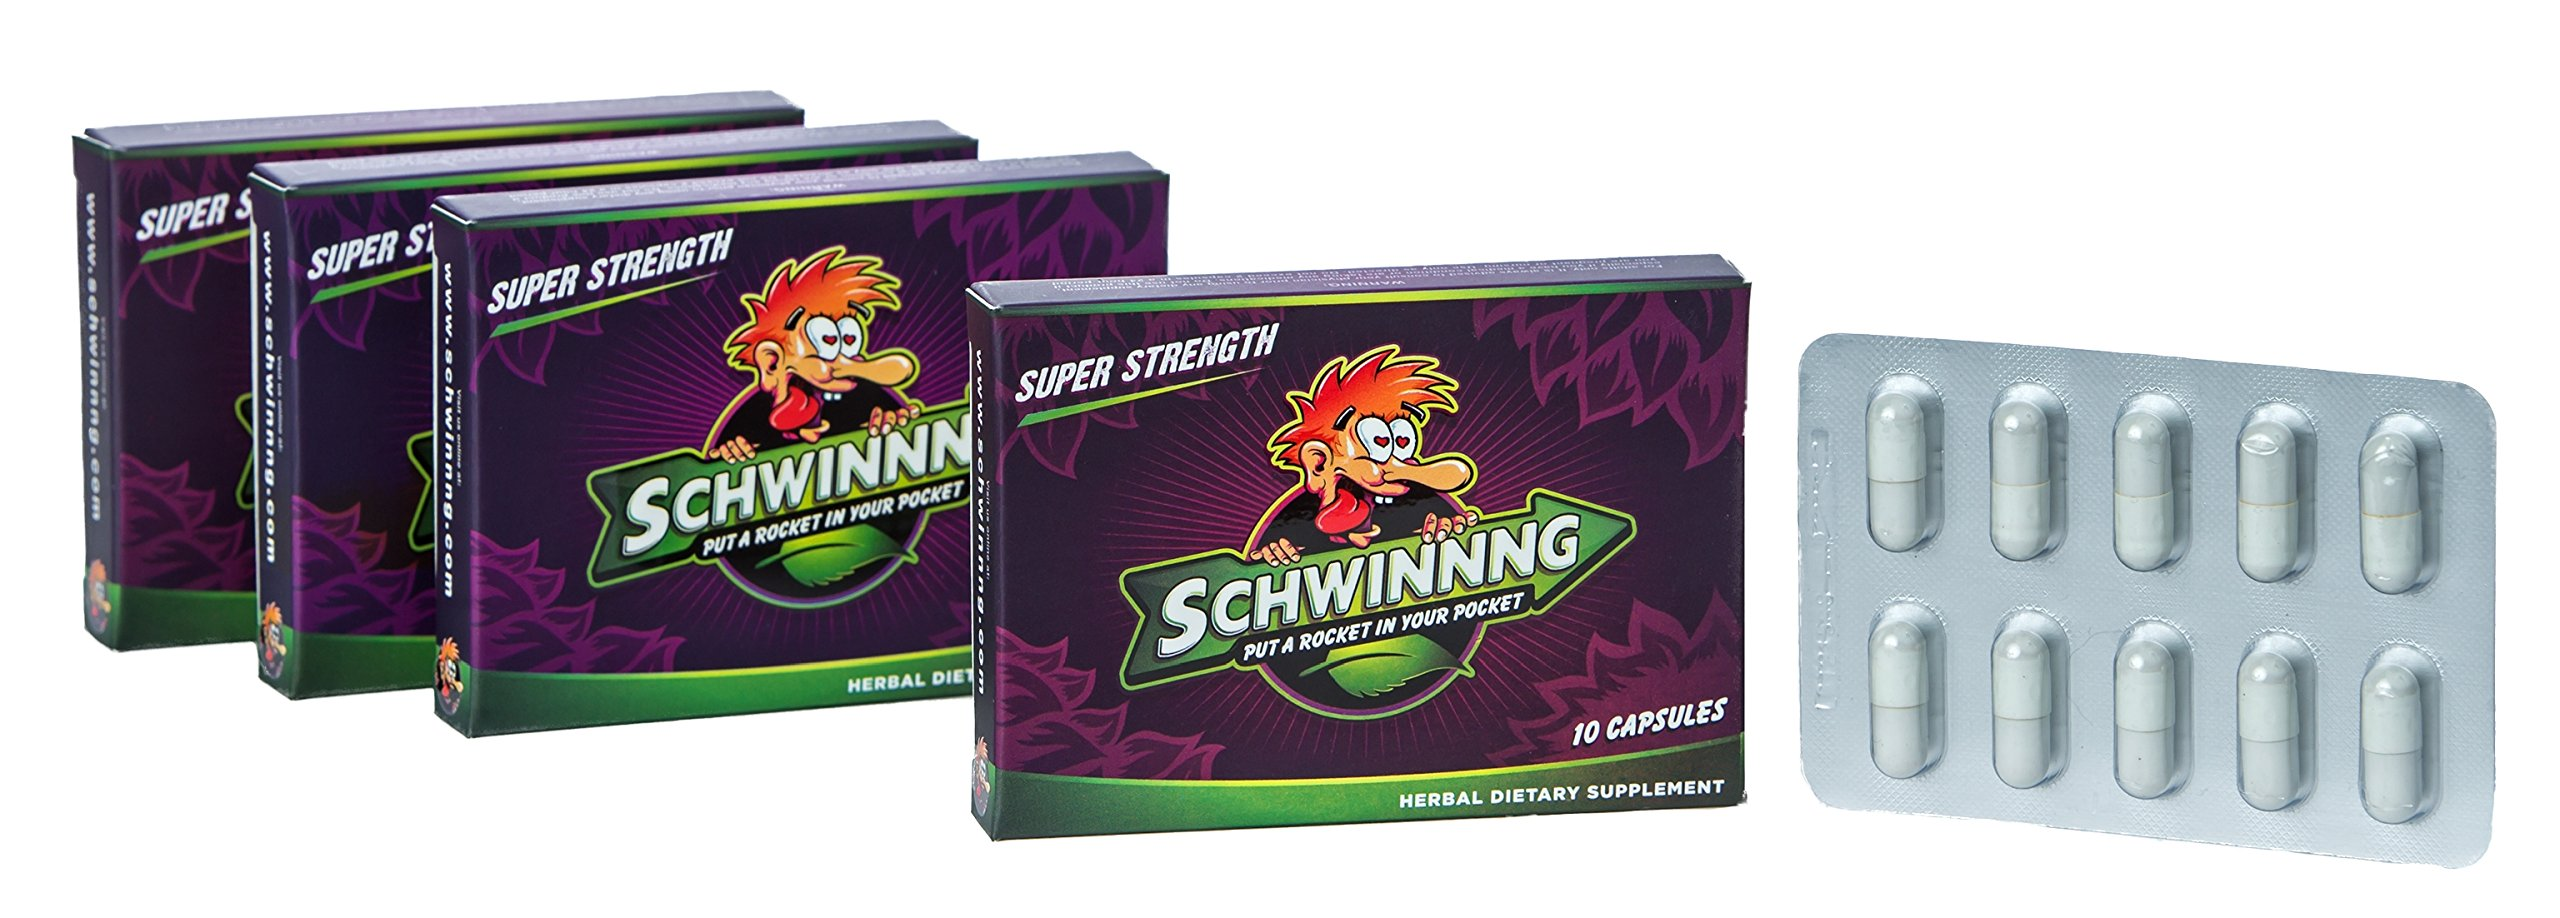 SCHWINNNG * SUPER STRENGTH - NEW ALL-NATURAL MALE ENHANCEMENT PILL! (40 Capsules) Buy 3 packs of (10) capsules Get the 4th for $10 by SCHWINNNG (Image #2)